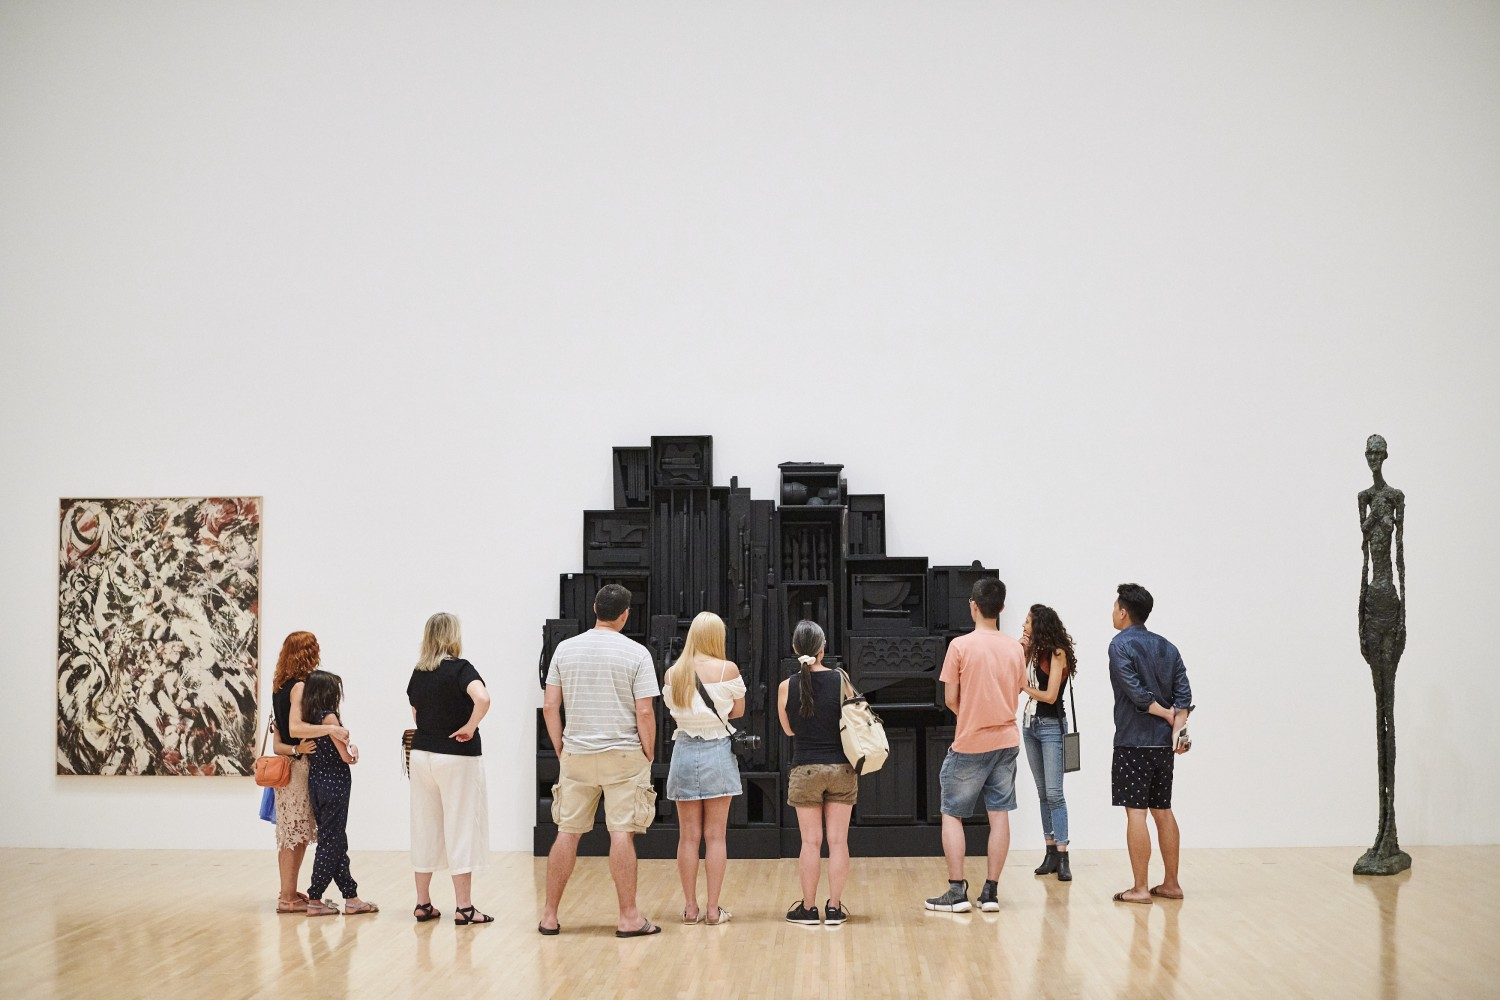 Image courtesy of The Museum of Contemporary Art, Los Angeles, photo by Sean MacGillivray